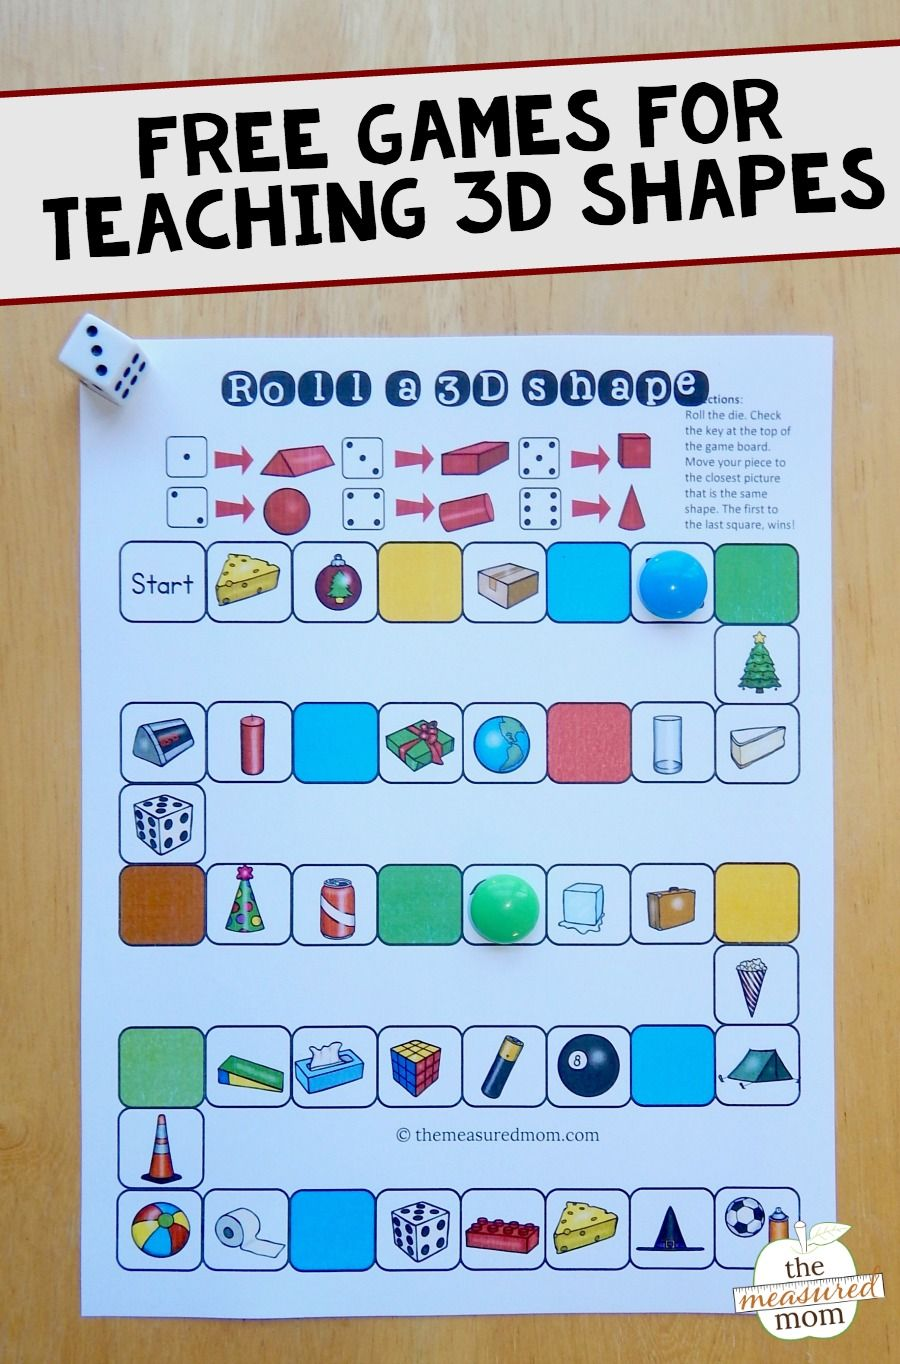 small resolution of 3D shape games - The Measured Mom   Teaching shapes